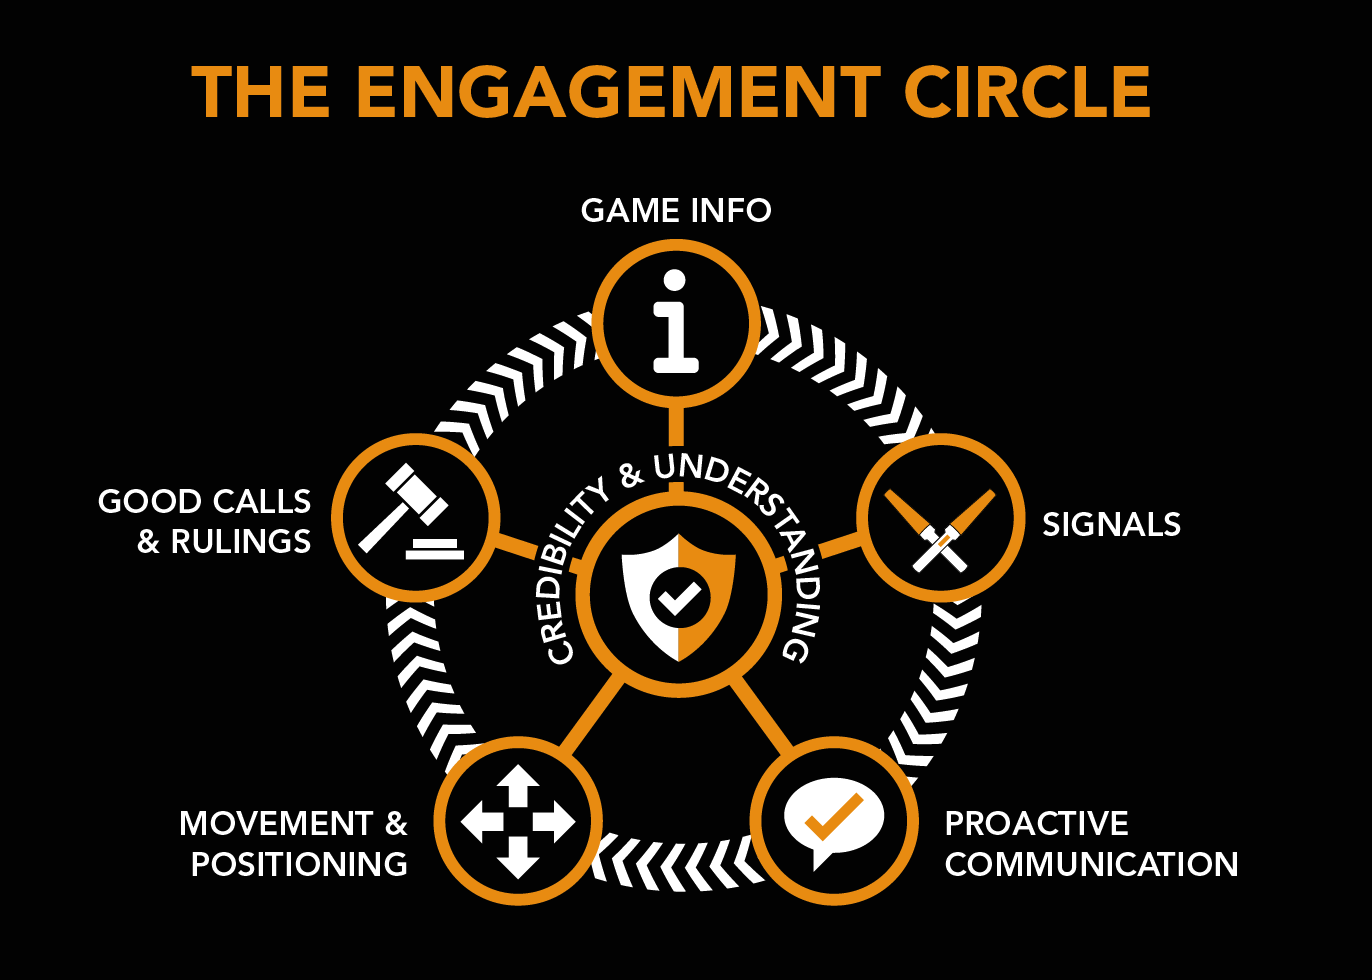 The engagement circle always starts with Game Info